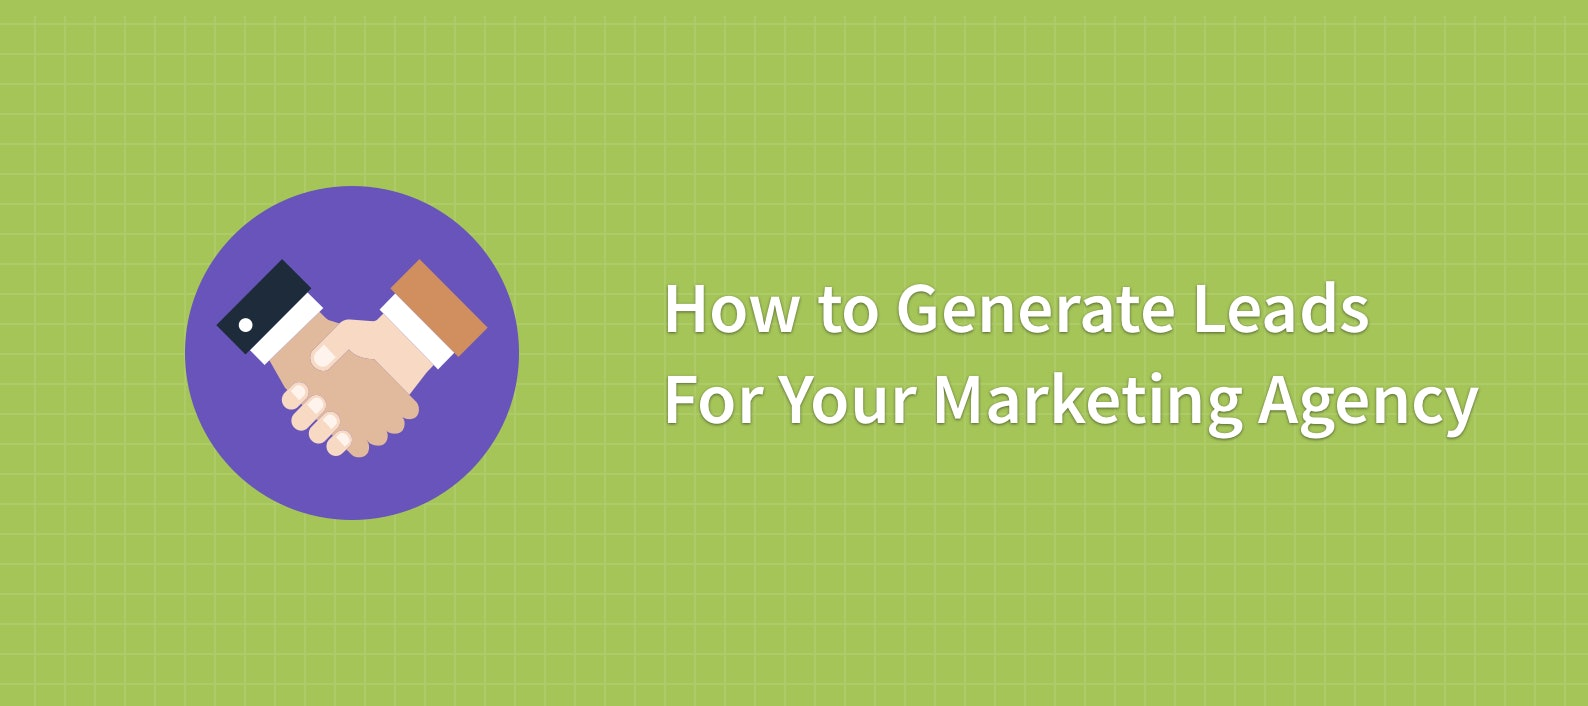 How to Generate Leads for Your Marketing Agency - BrightLocal